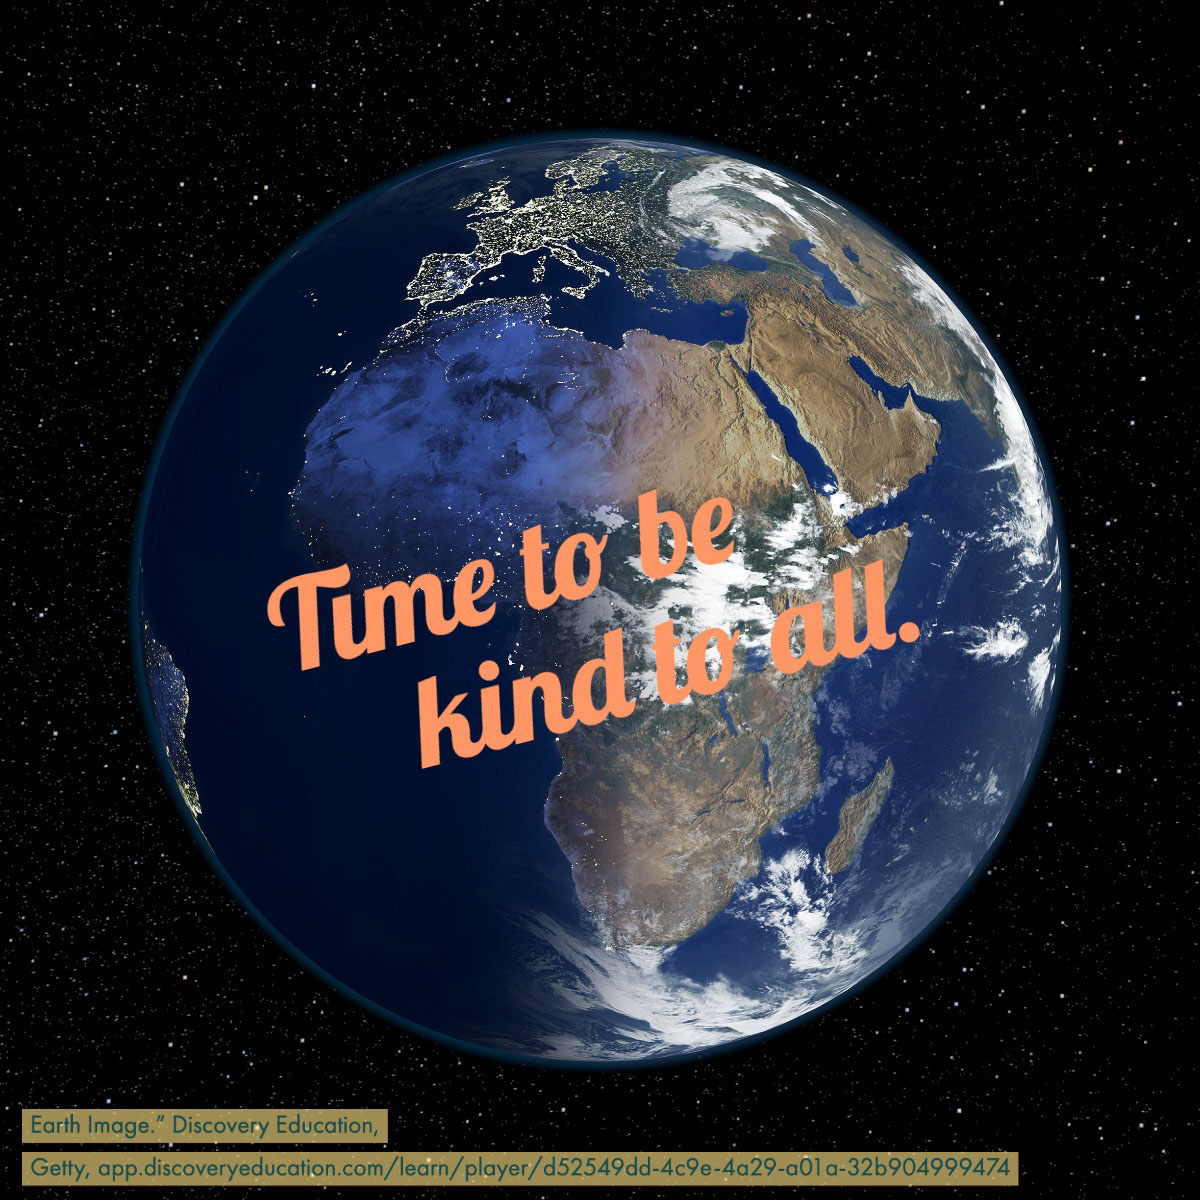 "Time to be Time to be   kind to all.   Earth Image."" Discovery Education, Getty, app.discoveryeducation.com/learn/player/d52549dd-4c9e-4a29-a01a-32b904999474"